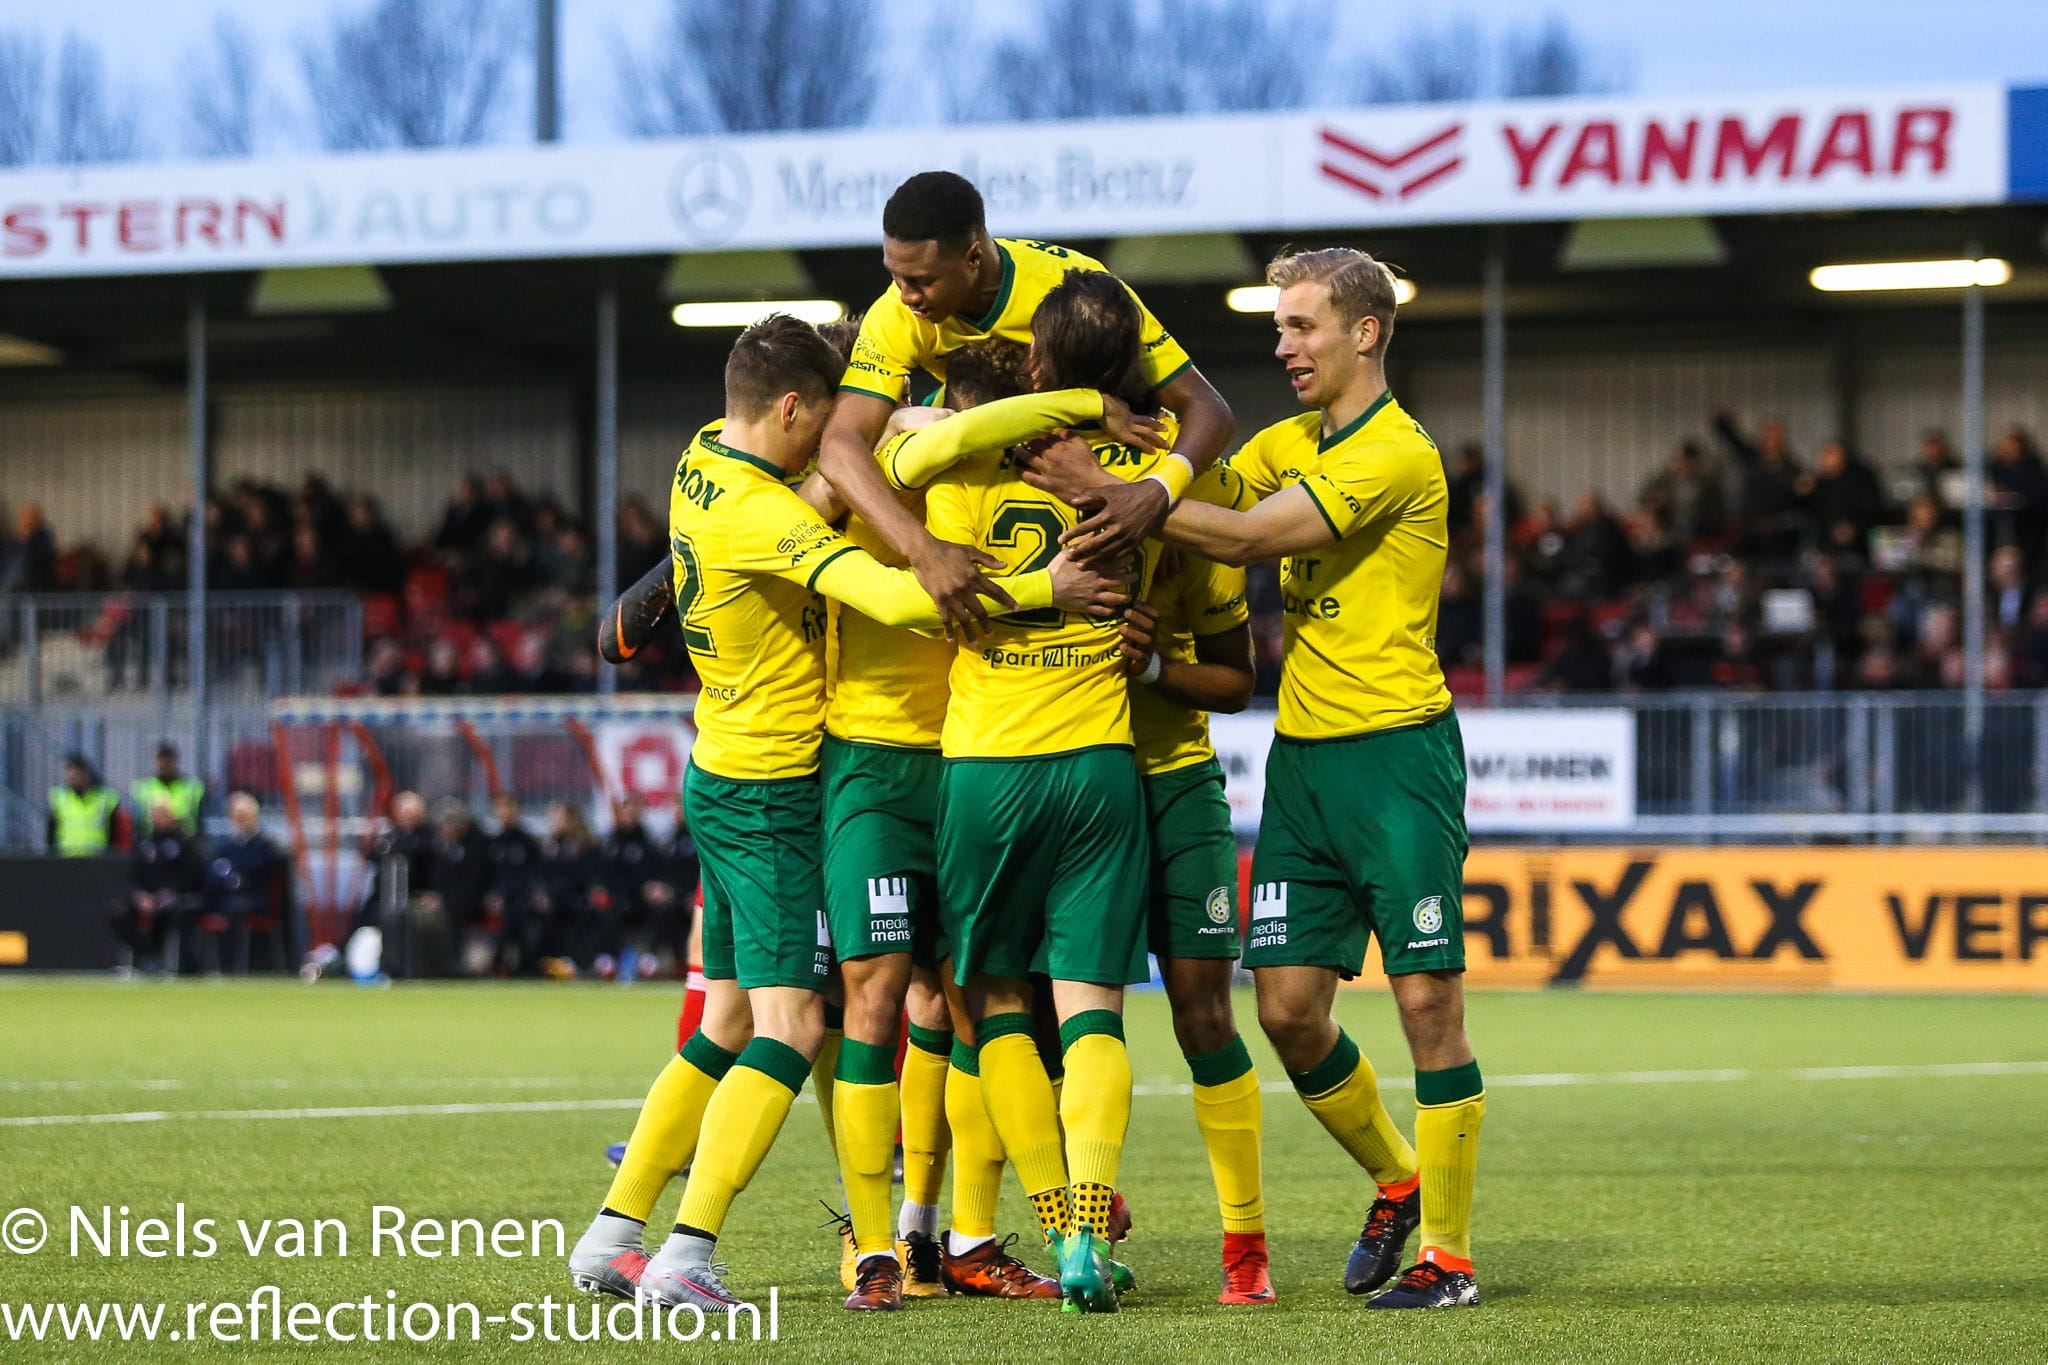 Almere City 1 Fortuna Sittard 4